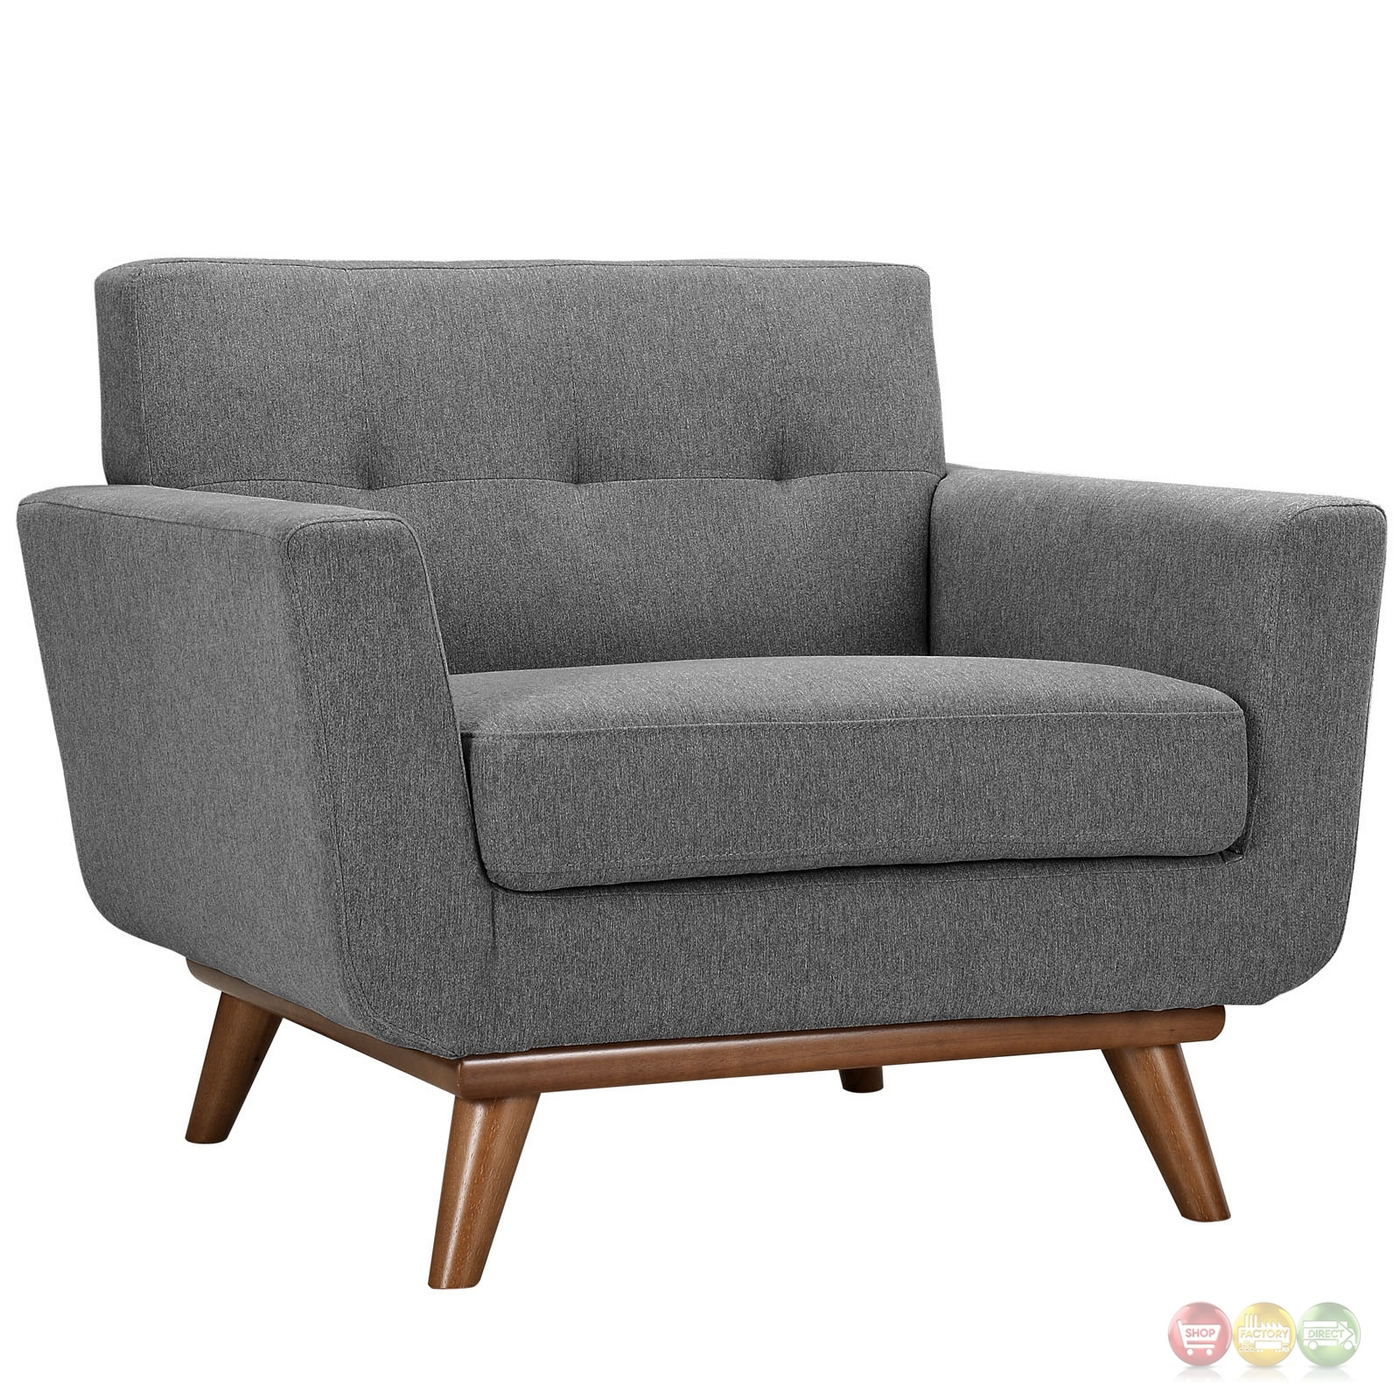 Engage Modern 2pc Upholstered Button Tufted Sofa